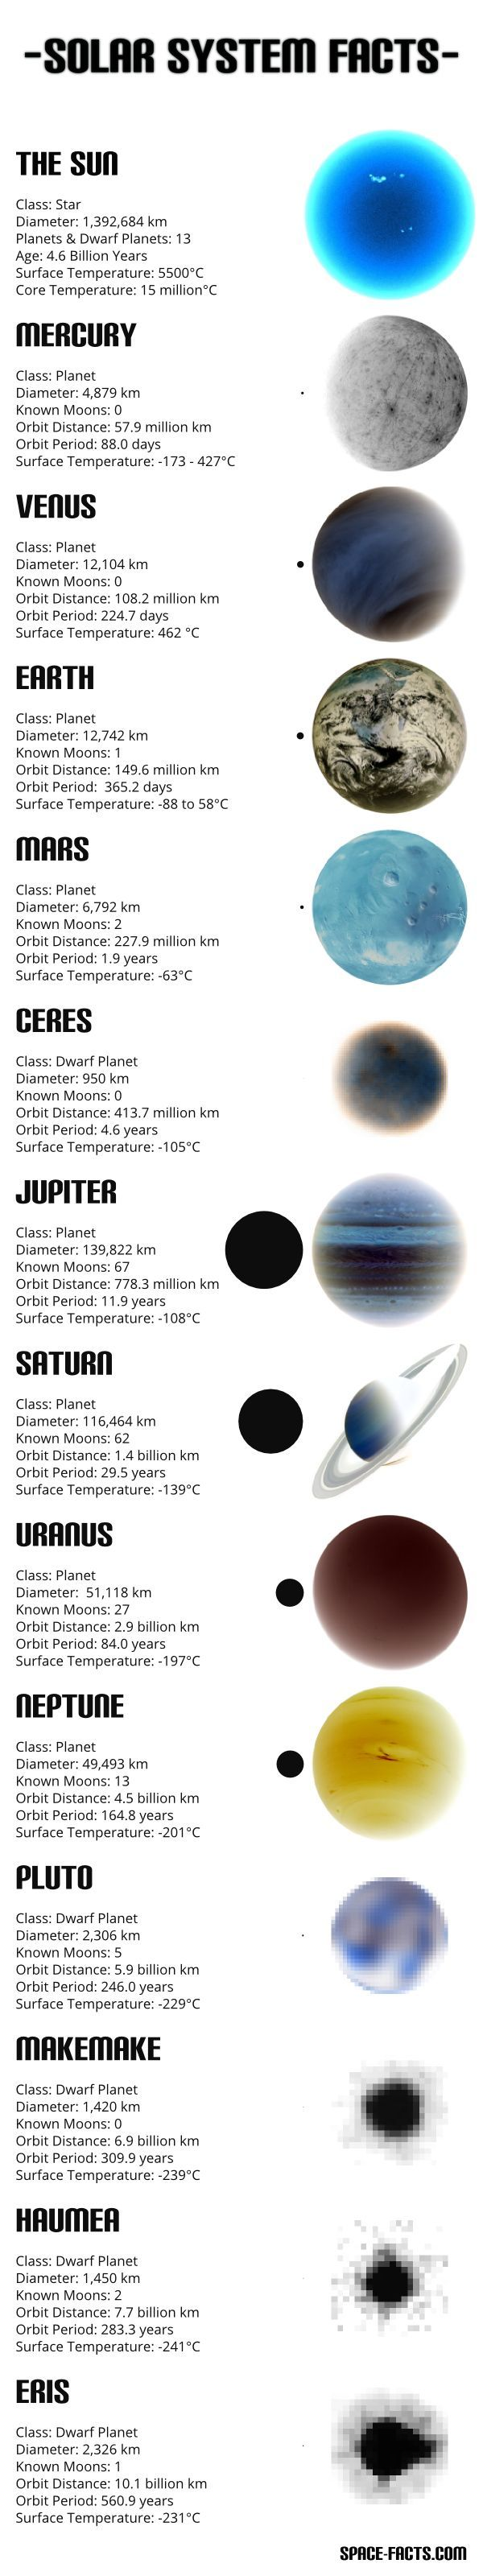 Solar system facts and information.